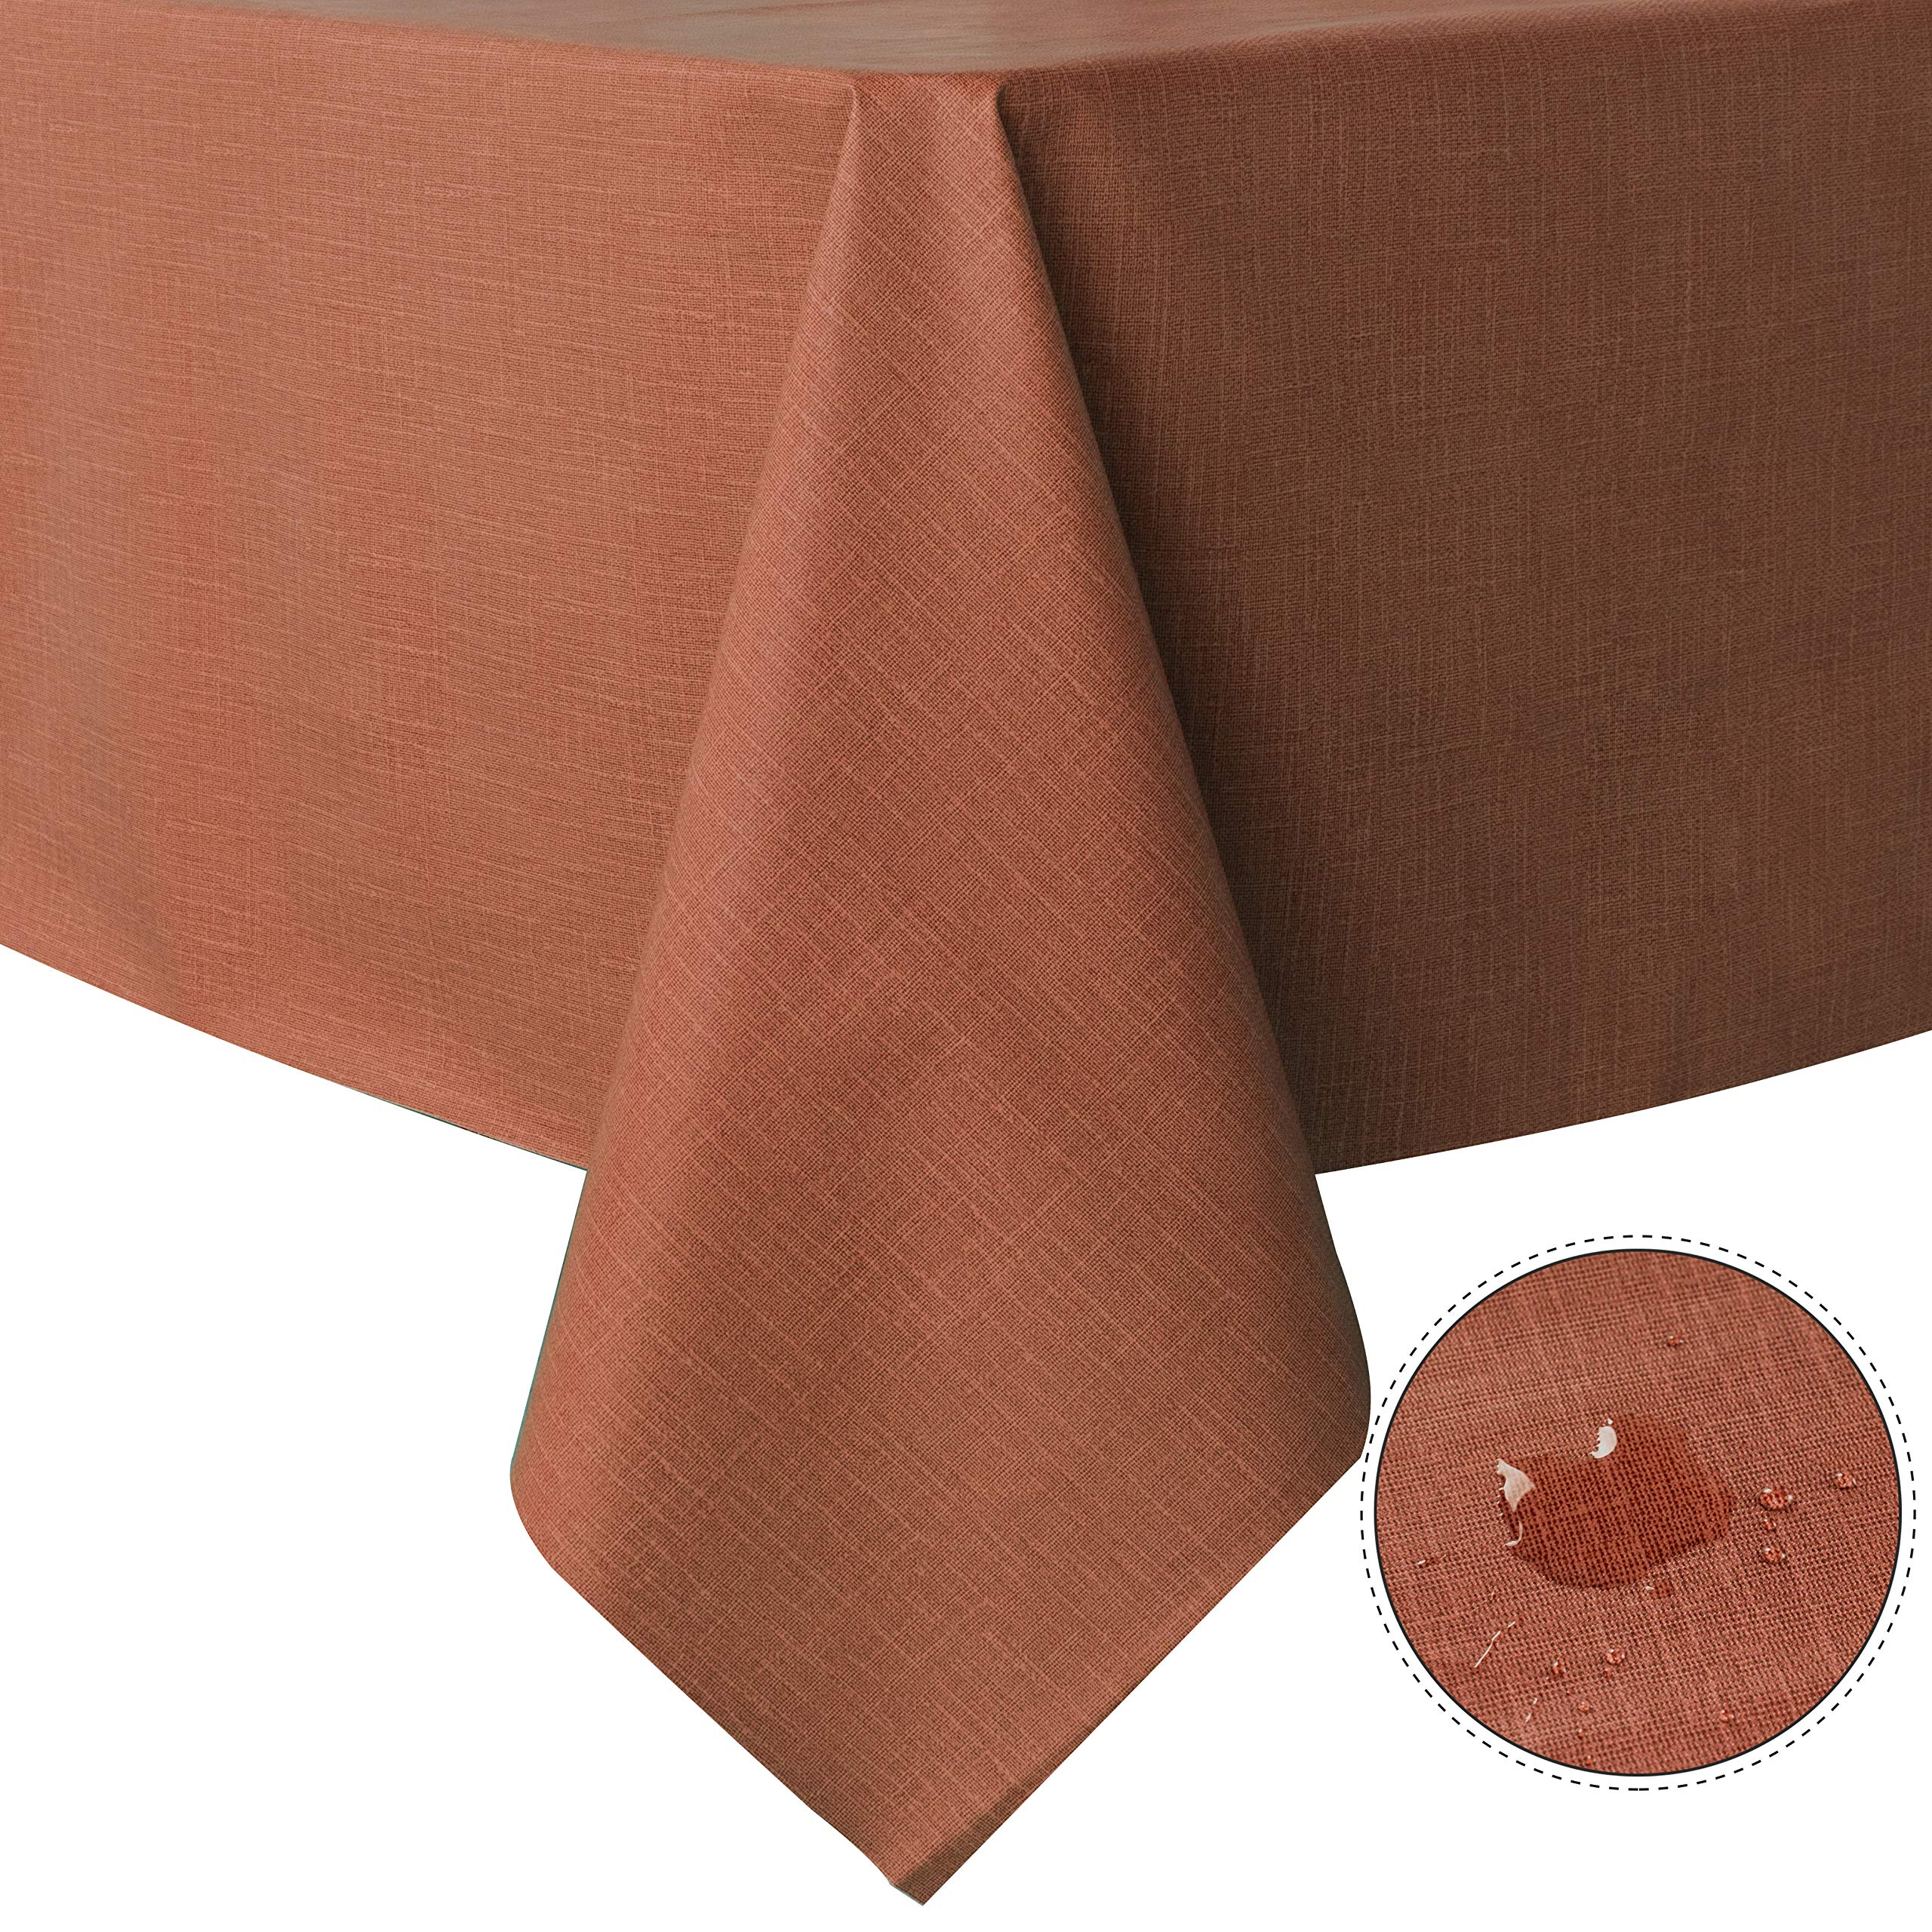 sancua 100% Waterproof Rectangle PVC Tablecloth - 52 x 70 Inch - Oil Proof Spill Proof Vinyl Table Cloth, Wipe Clean Table Cover for Dining Table, Buffet Parties and Camping, Orange